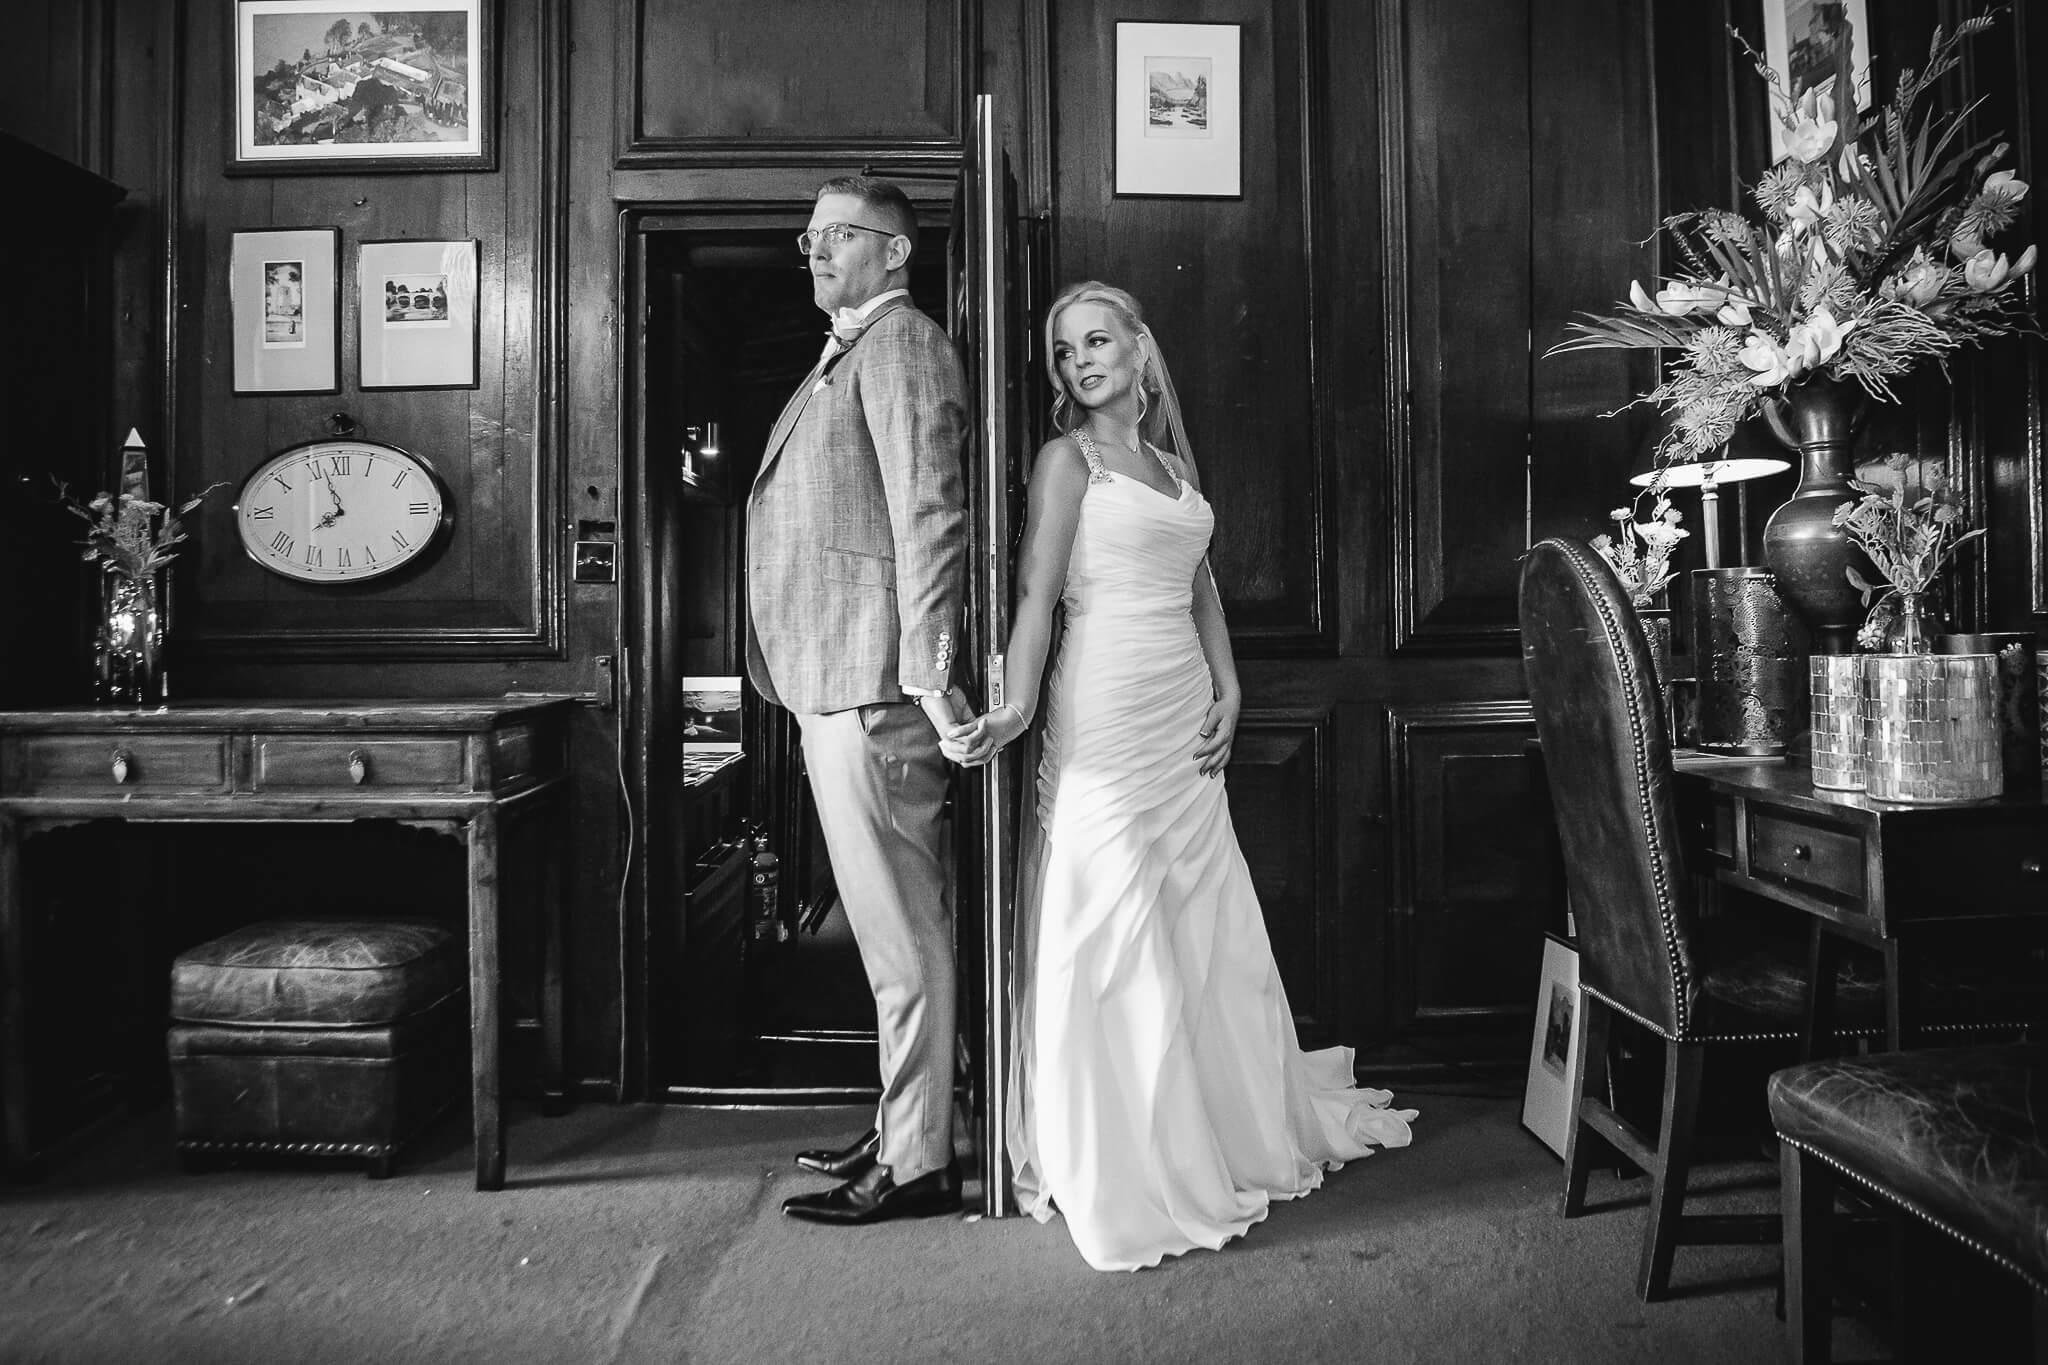 best-wedding-photographers-uk-europe-stanbury-photography-021